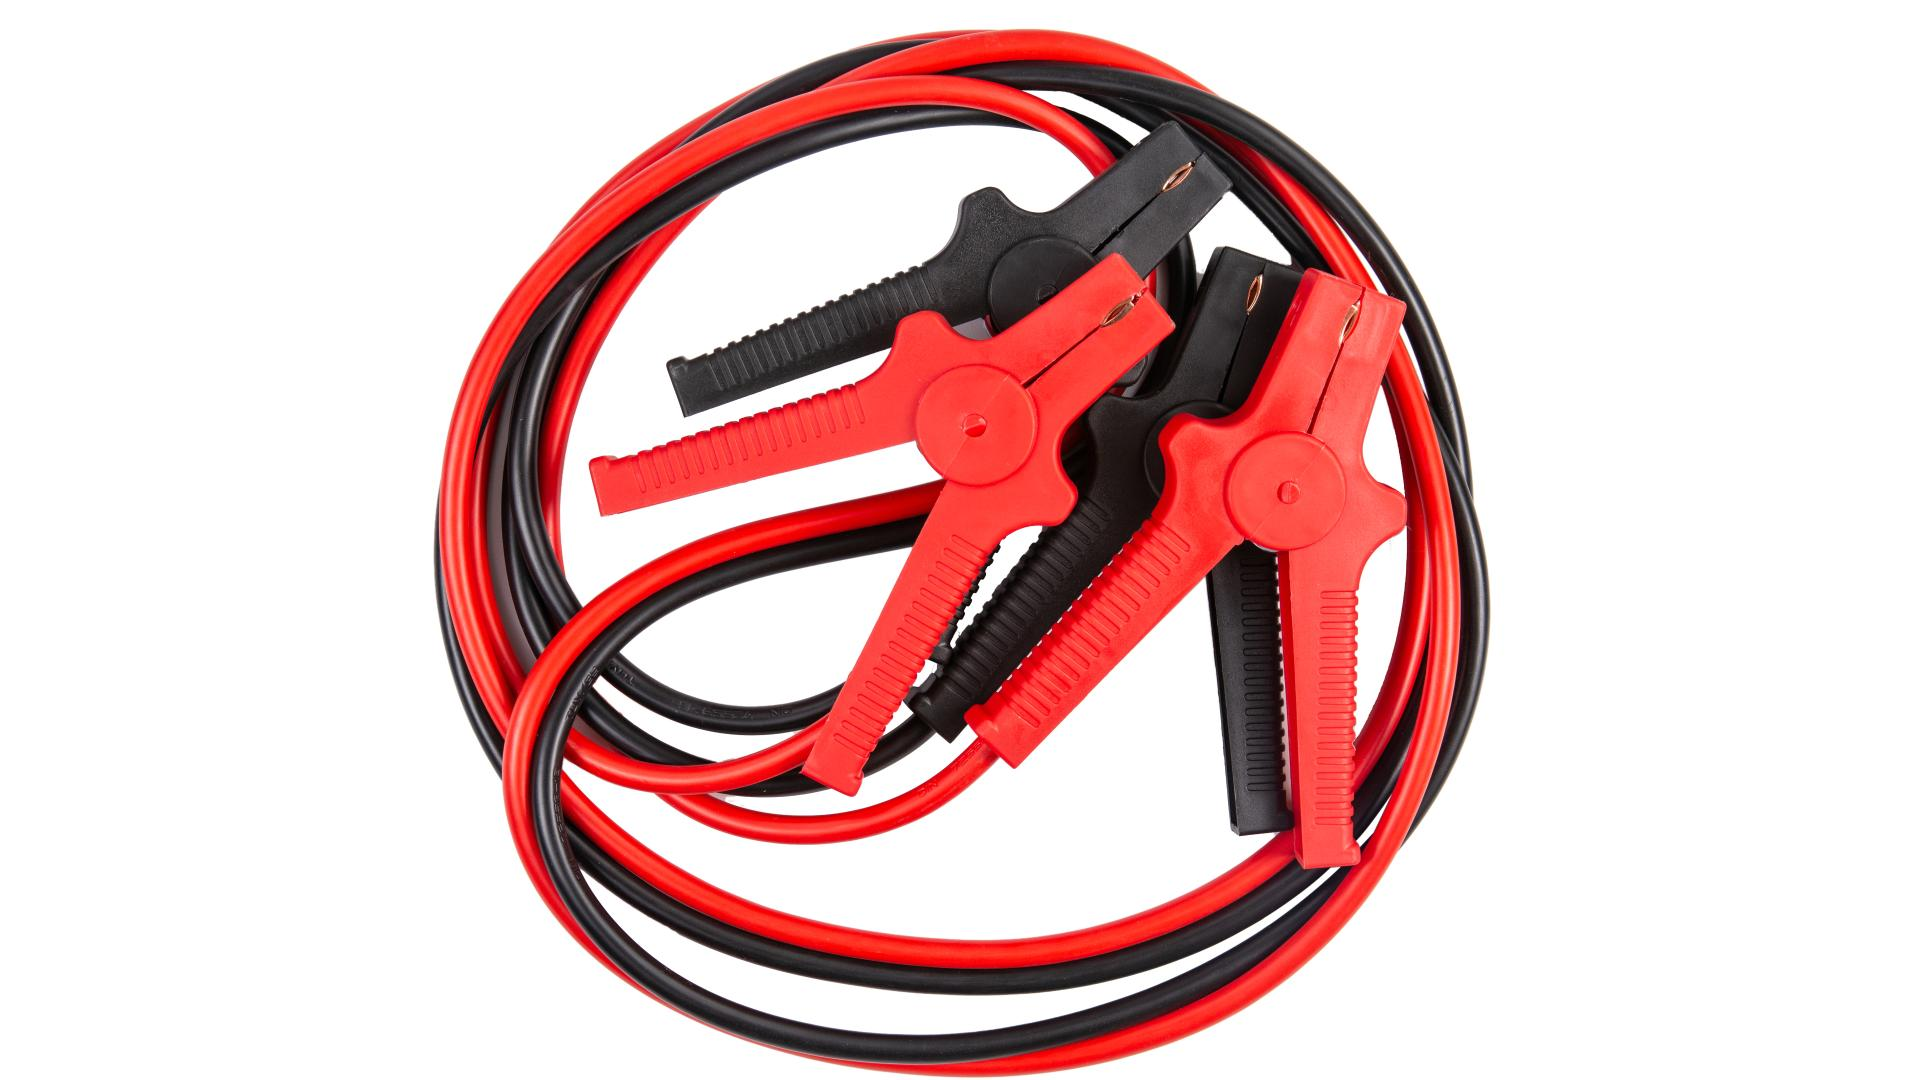 4 CARS Premium Jump start cable - DIN 72553 - Isolated clamps, thisckness 35.0MM², 4,5metra